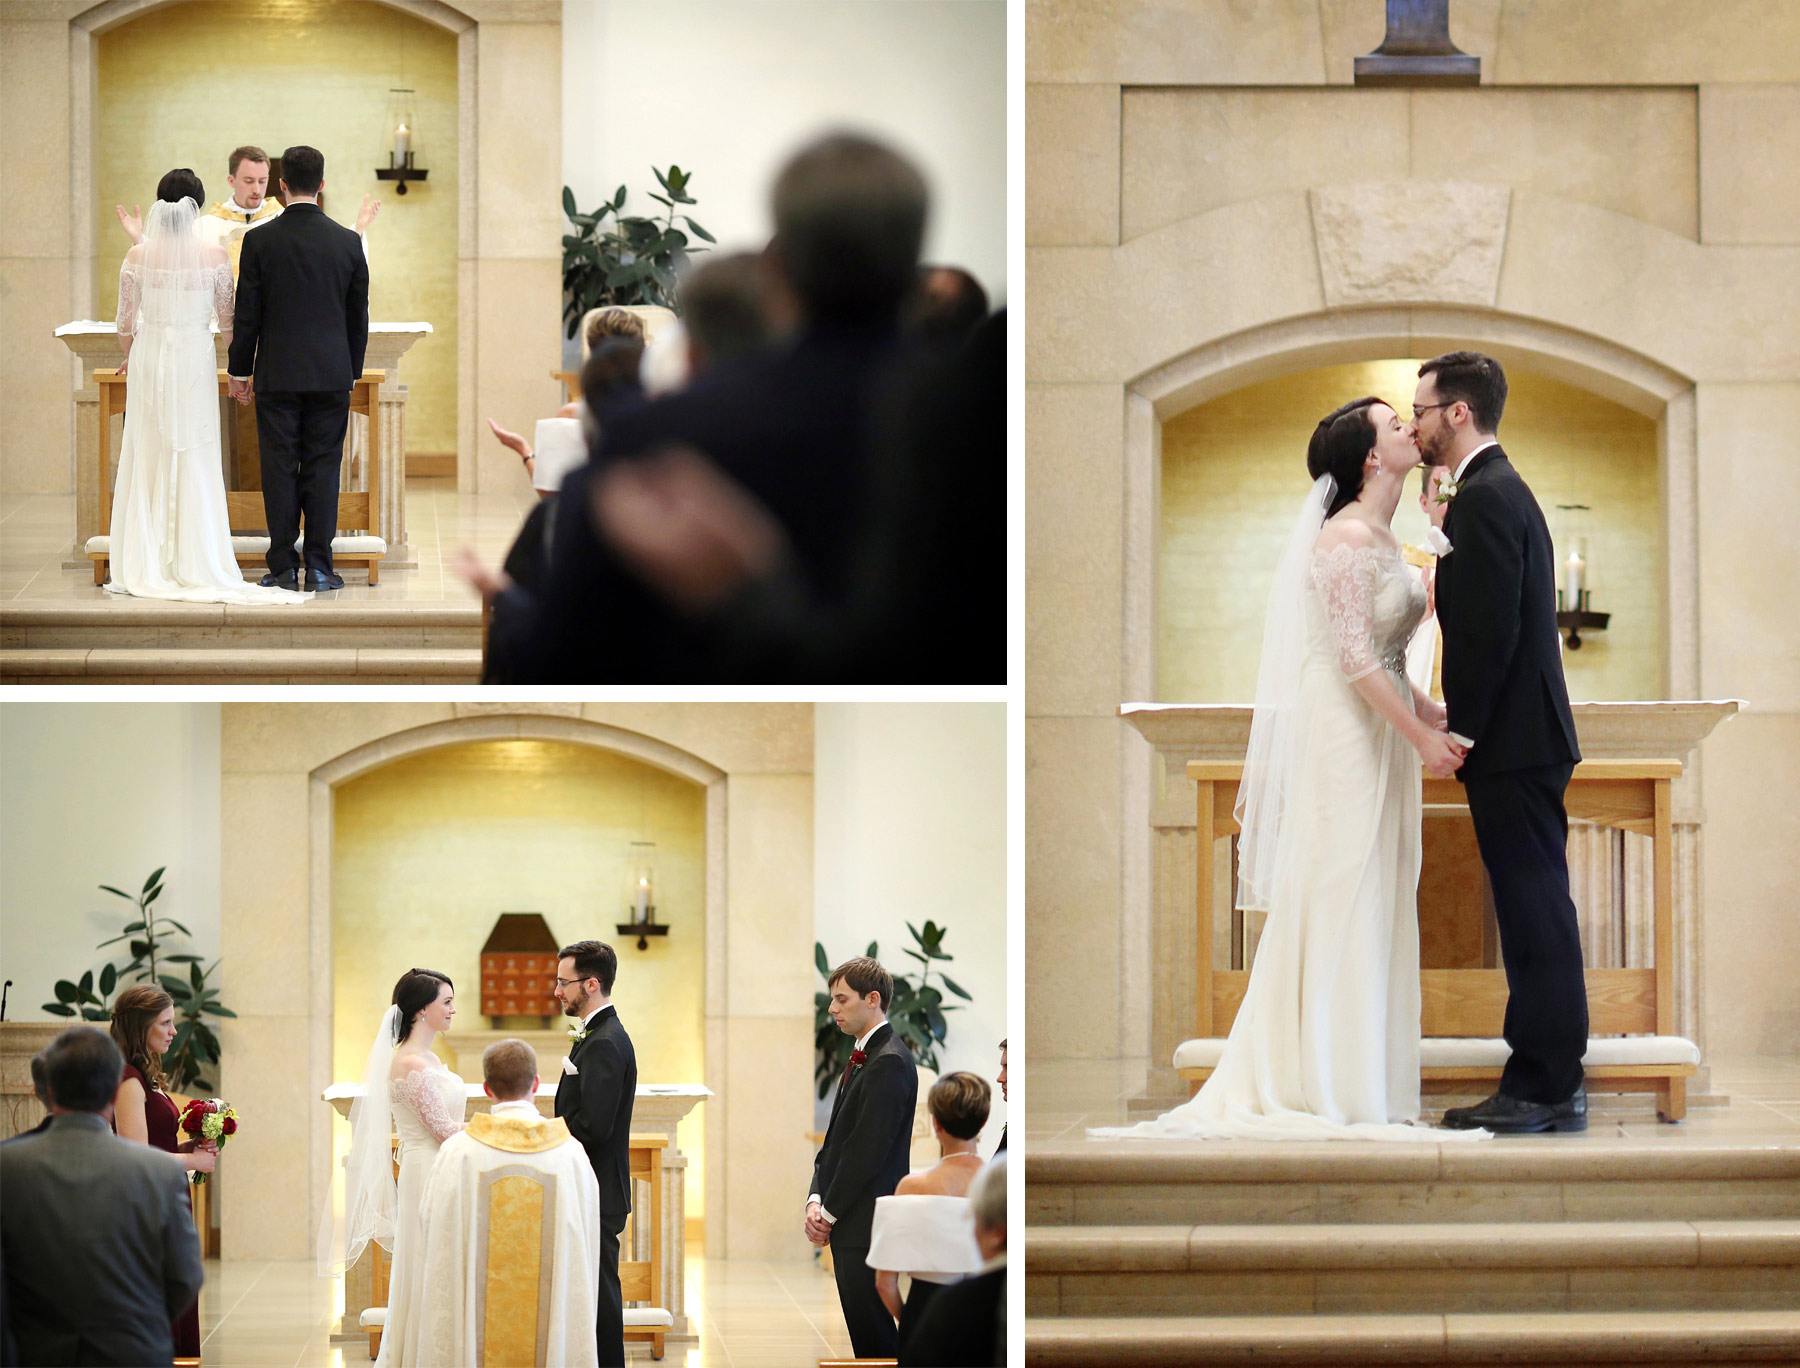 09-Minneapolis-Minnesota-Wedding-Photography-by-Vick-Photography-Our-Lady-of-Grace-Church-Ceremony-Sarah-and-Patrick.jpg